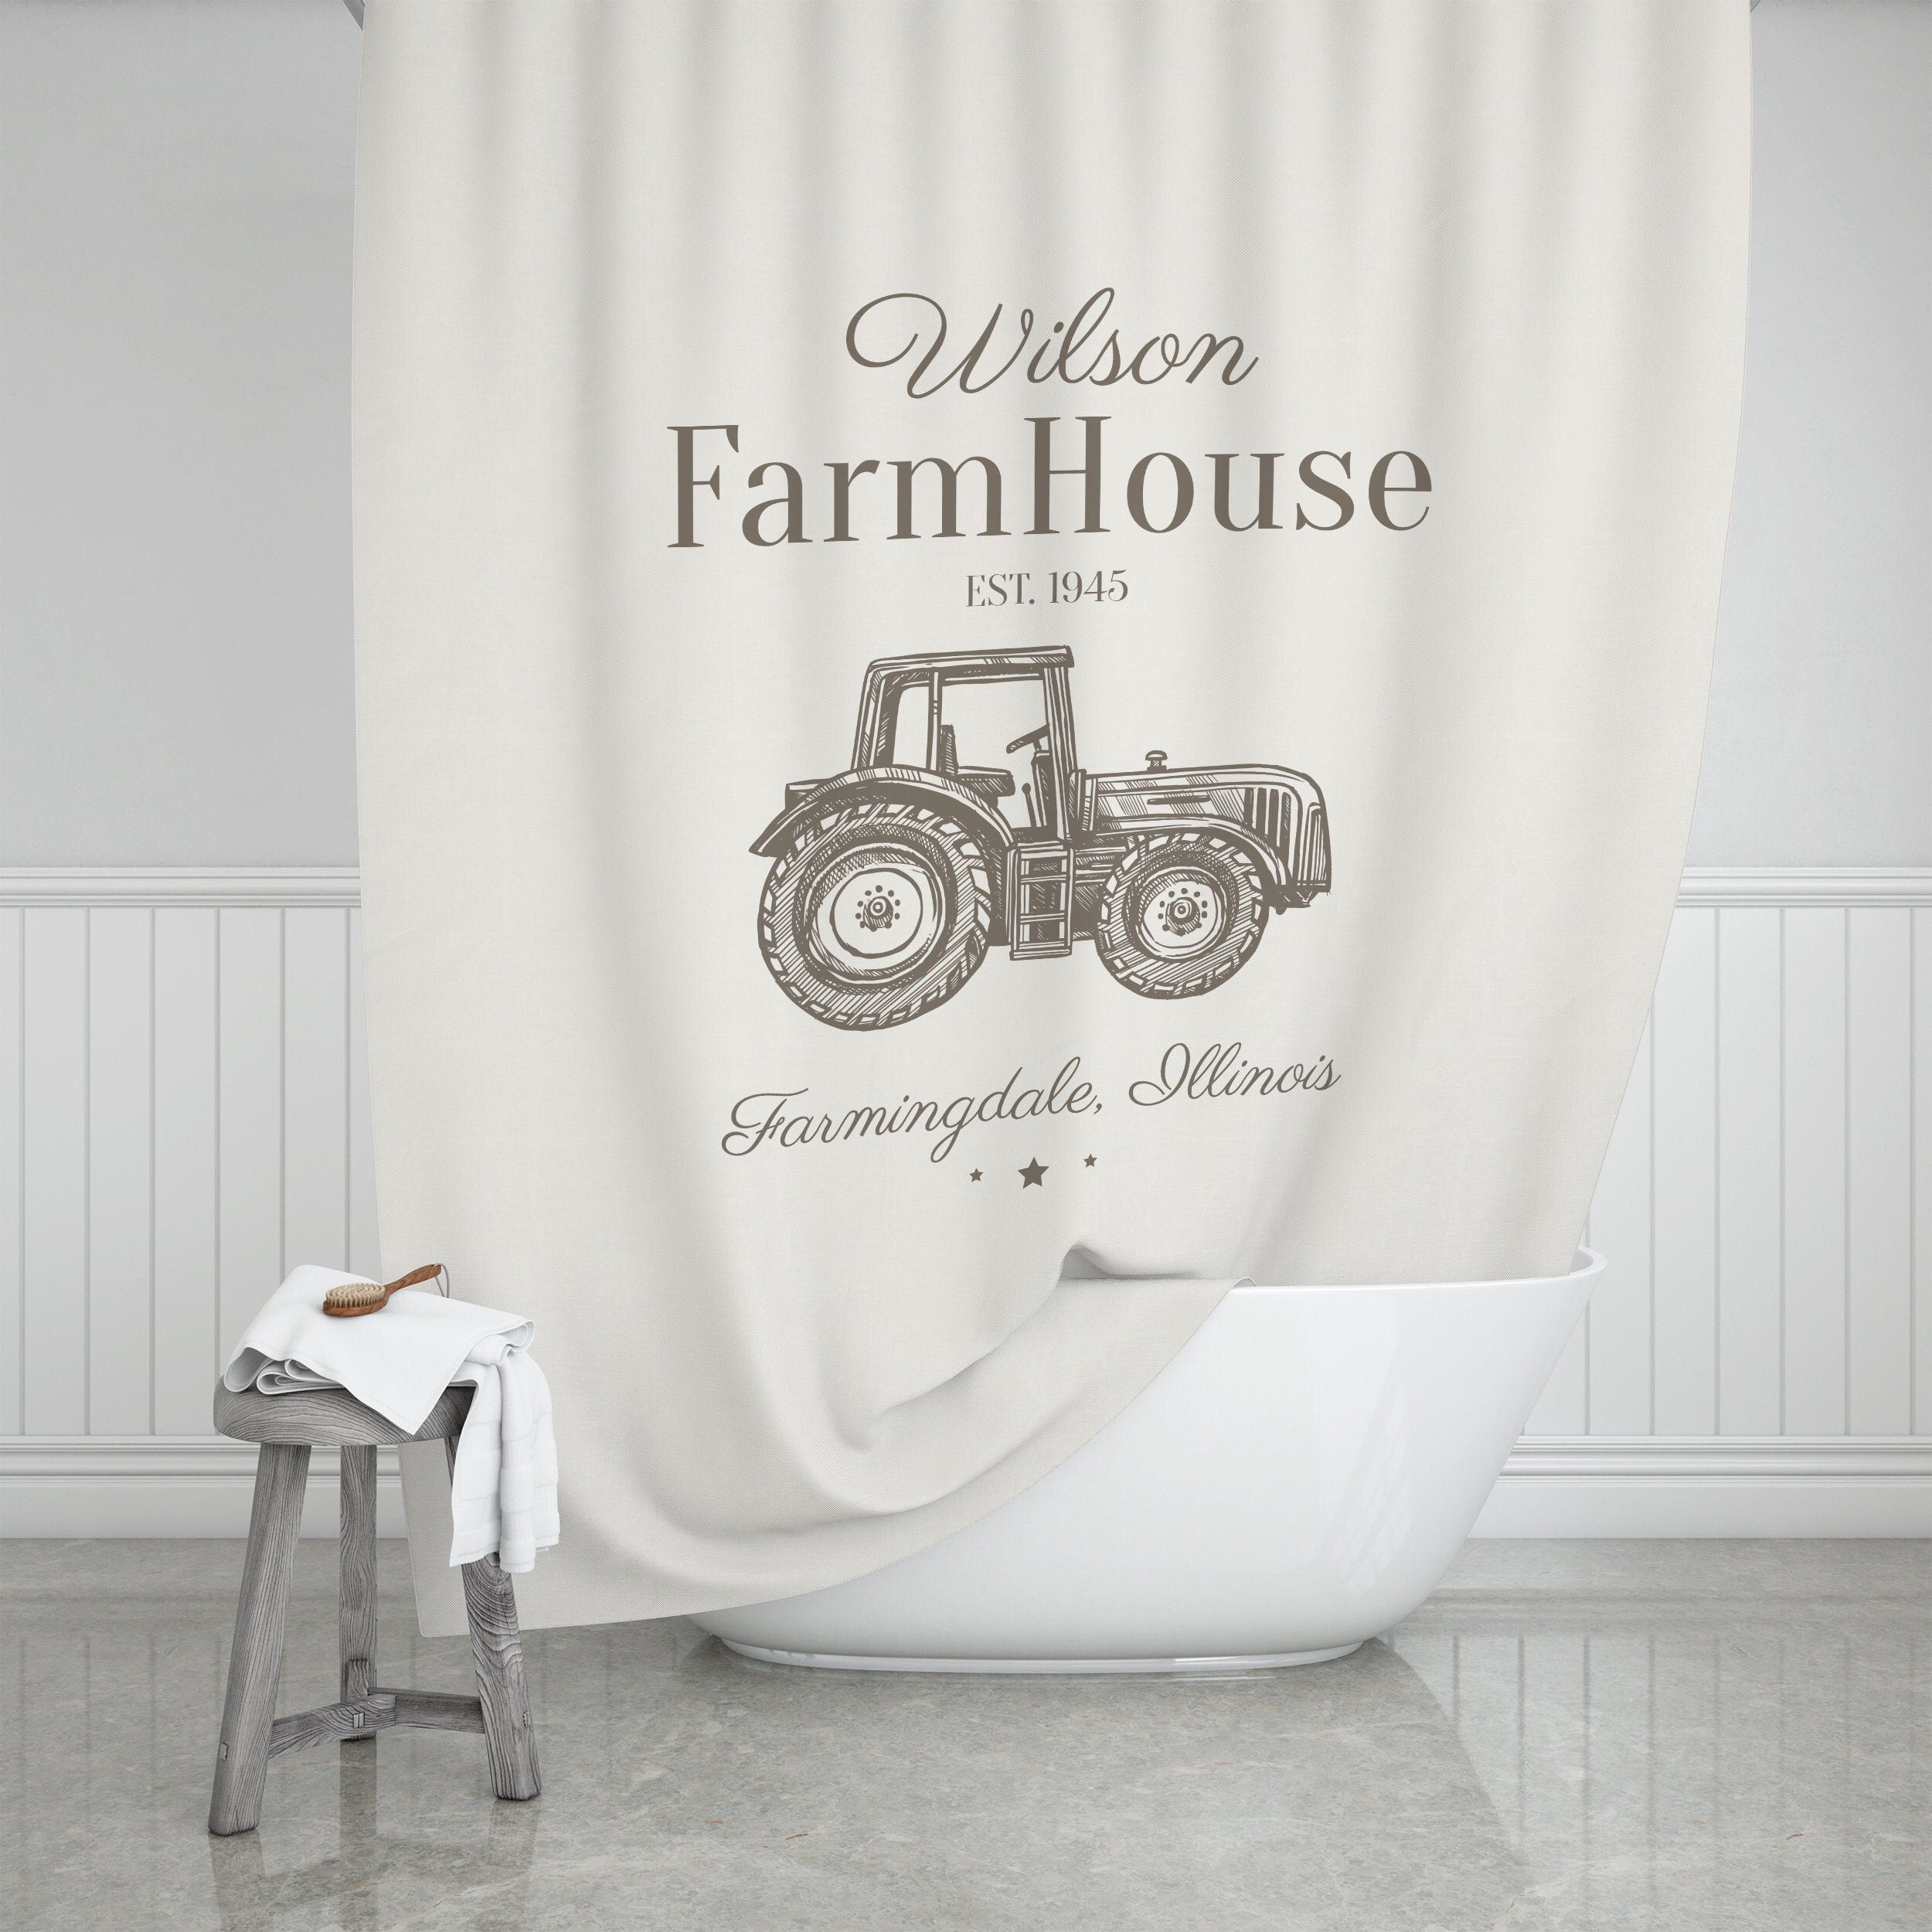 Pin By Martha Murphy On Bathroom Remodel In 2020 Shower Curtain